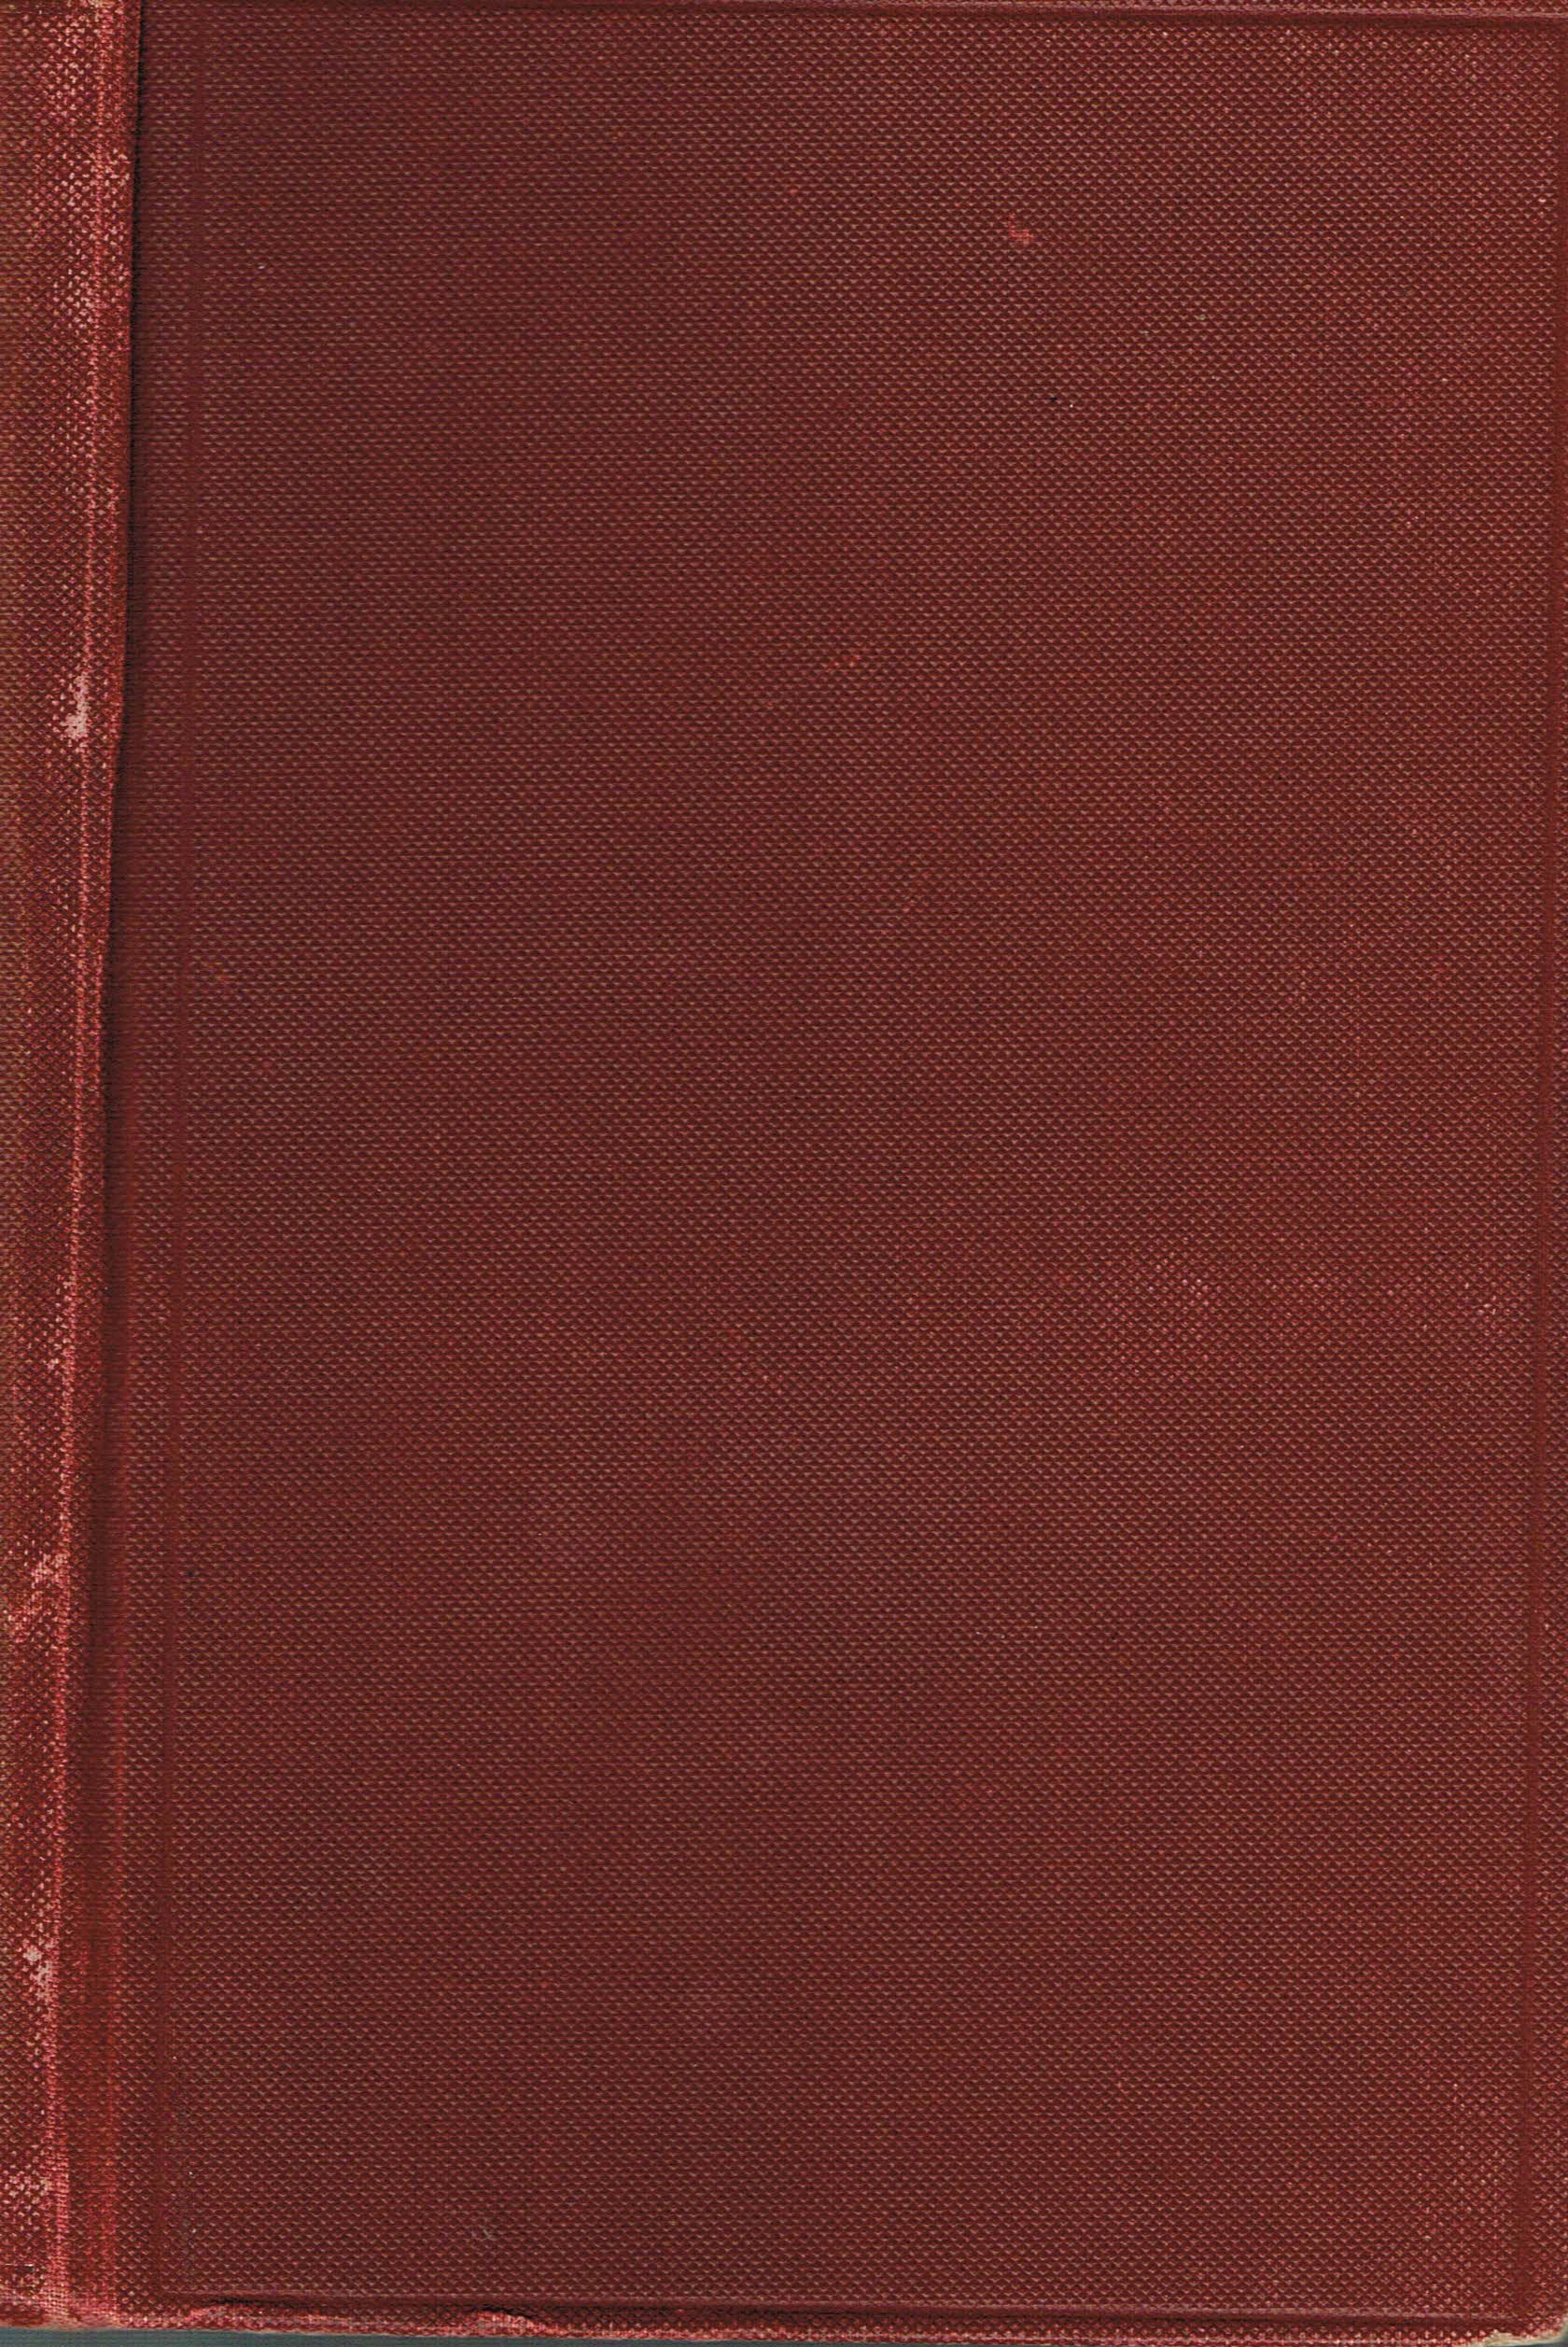 Official History of Australia in the War of 1914 - 18 : Photographic record of the war  Charles Edwin Woodrow Bean, Sir Henry Gullet, Arthur Wilberforce Jose...